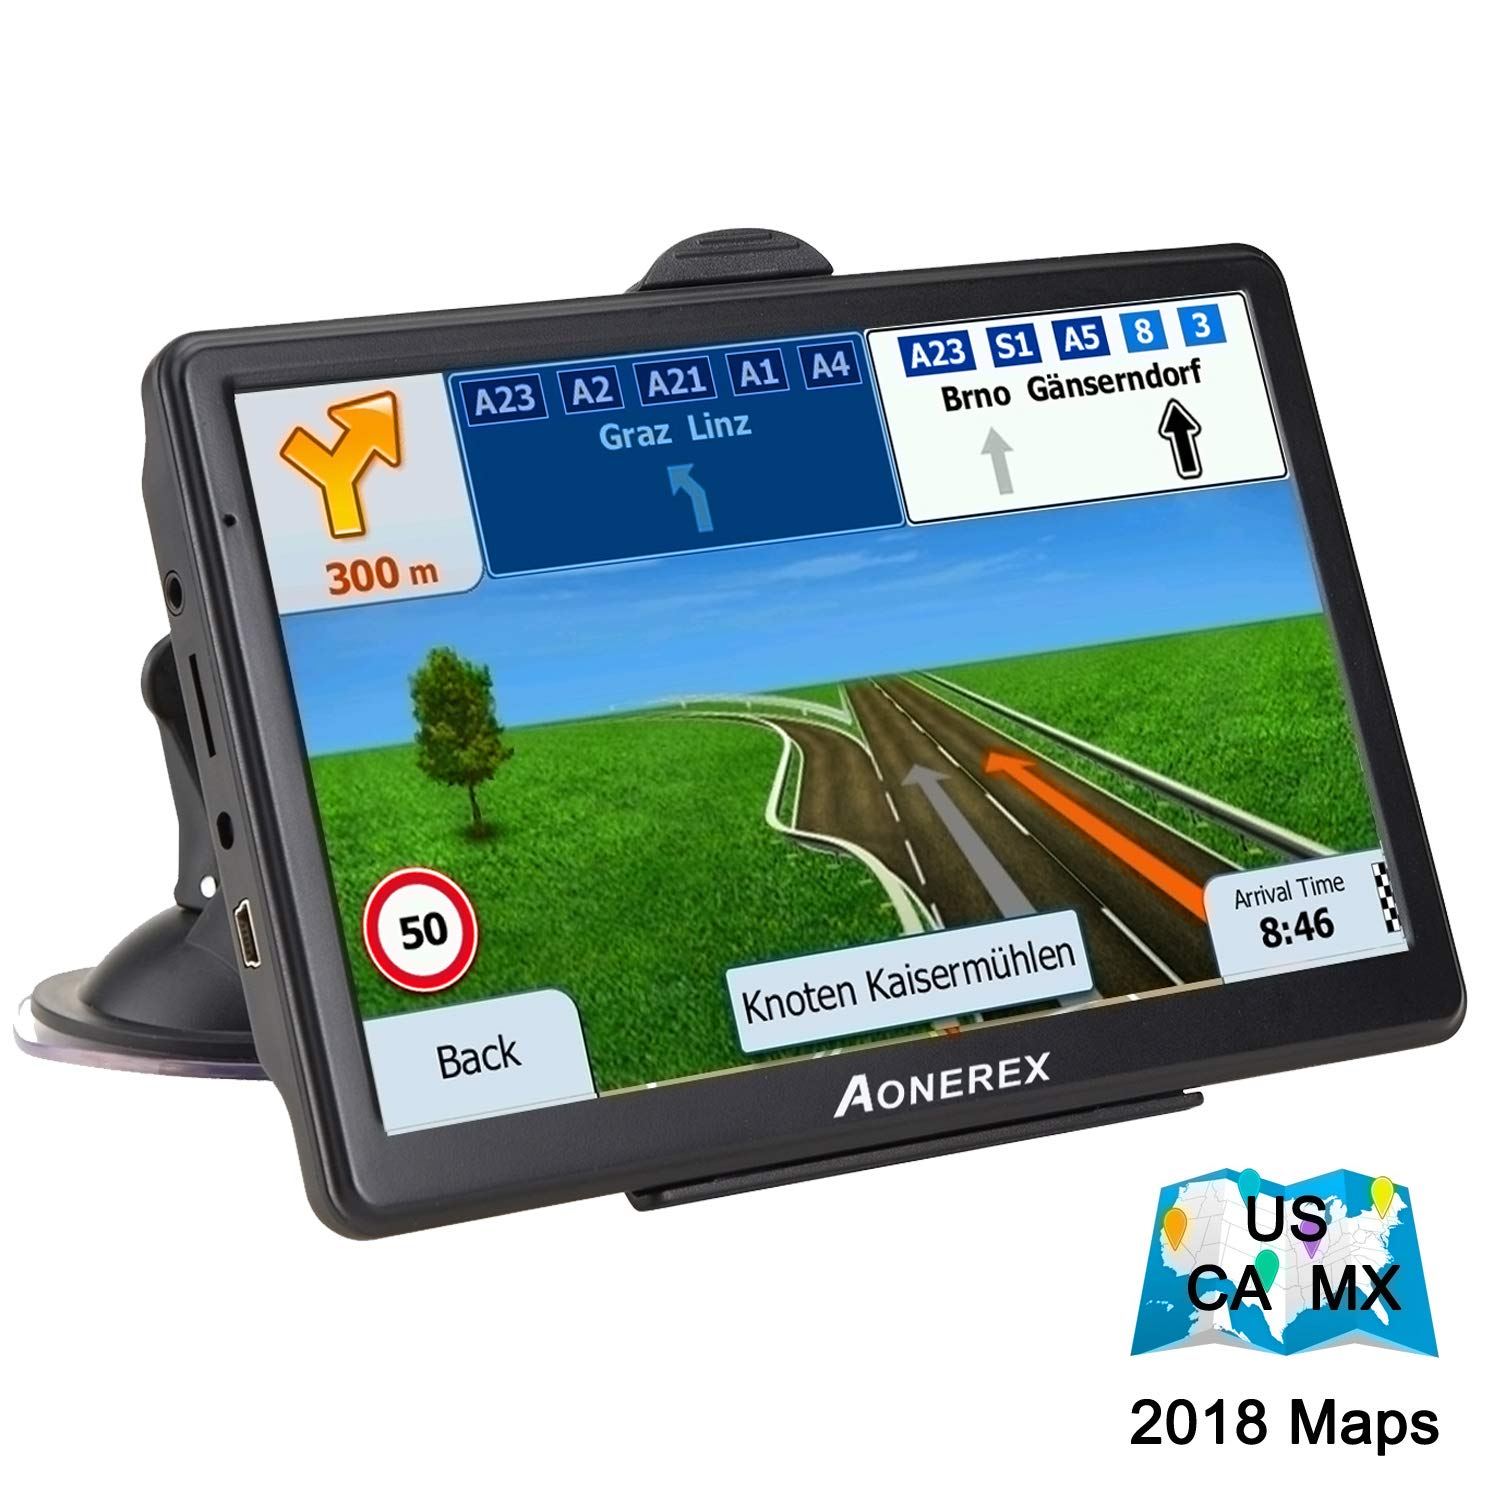 Car GPS Navigation-7 inch Touch Screen + 8GB Voice Prompt GPS Navigation System Built-in Lifetime Maps,Advanced Lane Guidance and Spoken Turn-by-Turn Directions